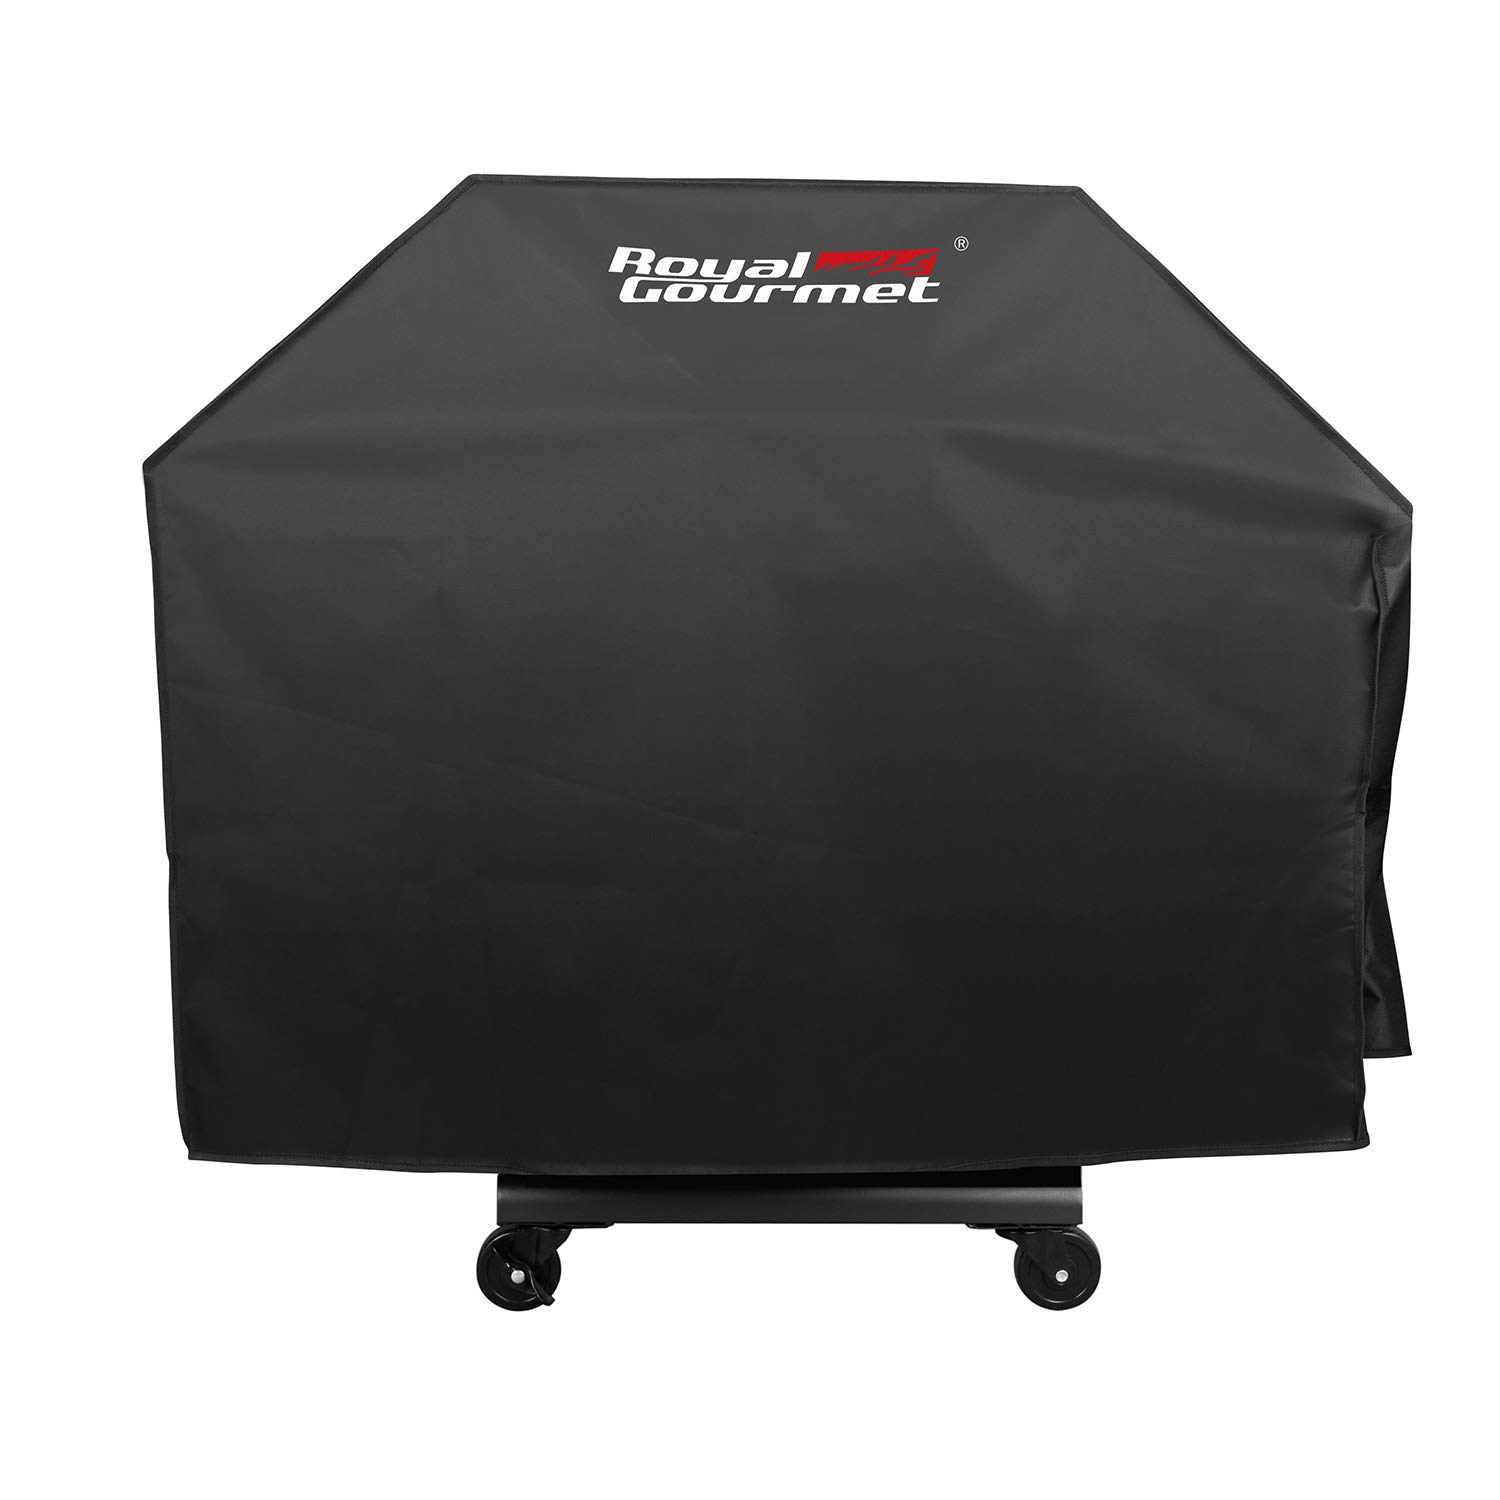 Royal Gourmet BBQ Grill Cover with Heavy Duty Waterproof Polyester Oxford, Small 47-Inch for Weber, Char Broil, Brinkmann by Royal Gourmet